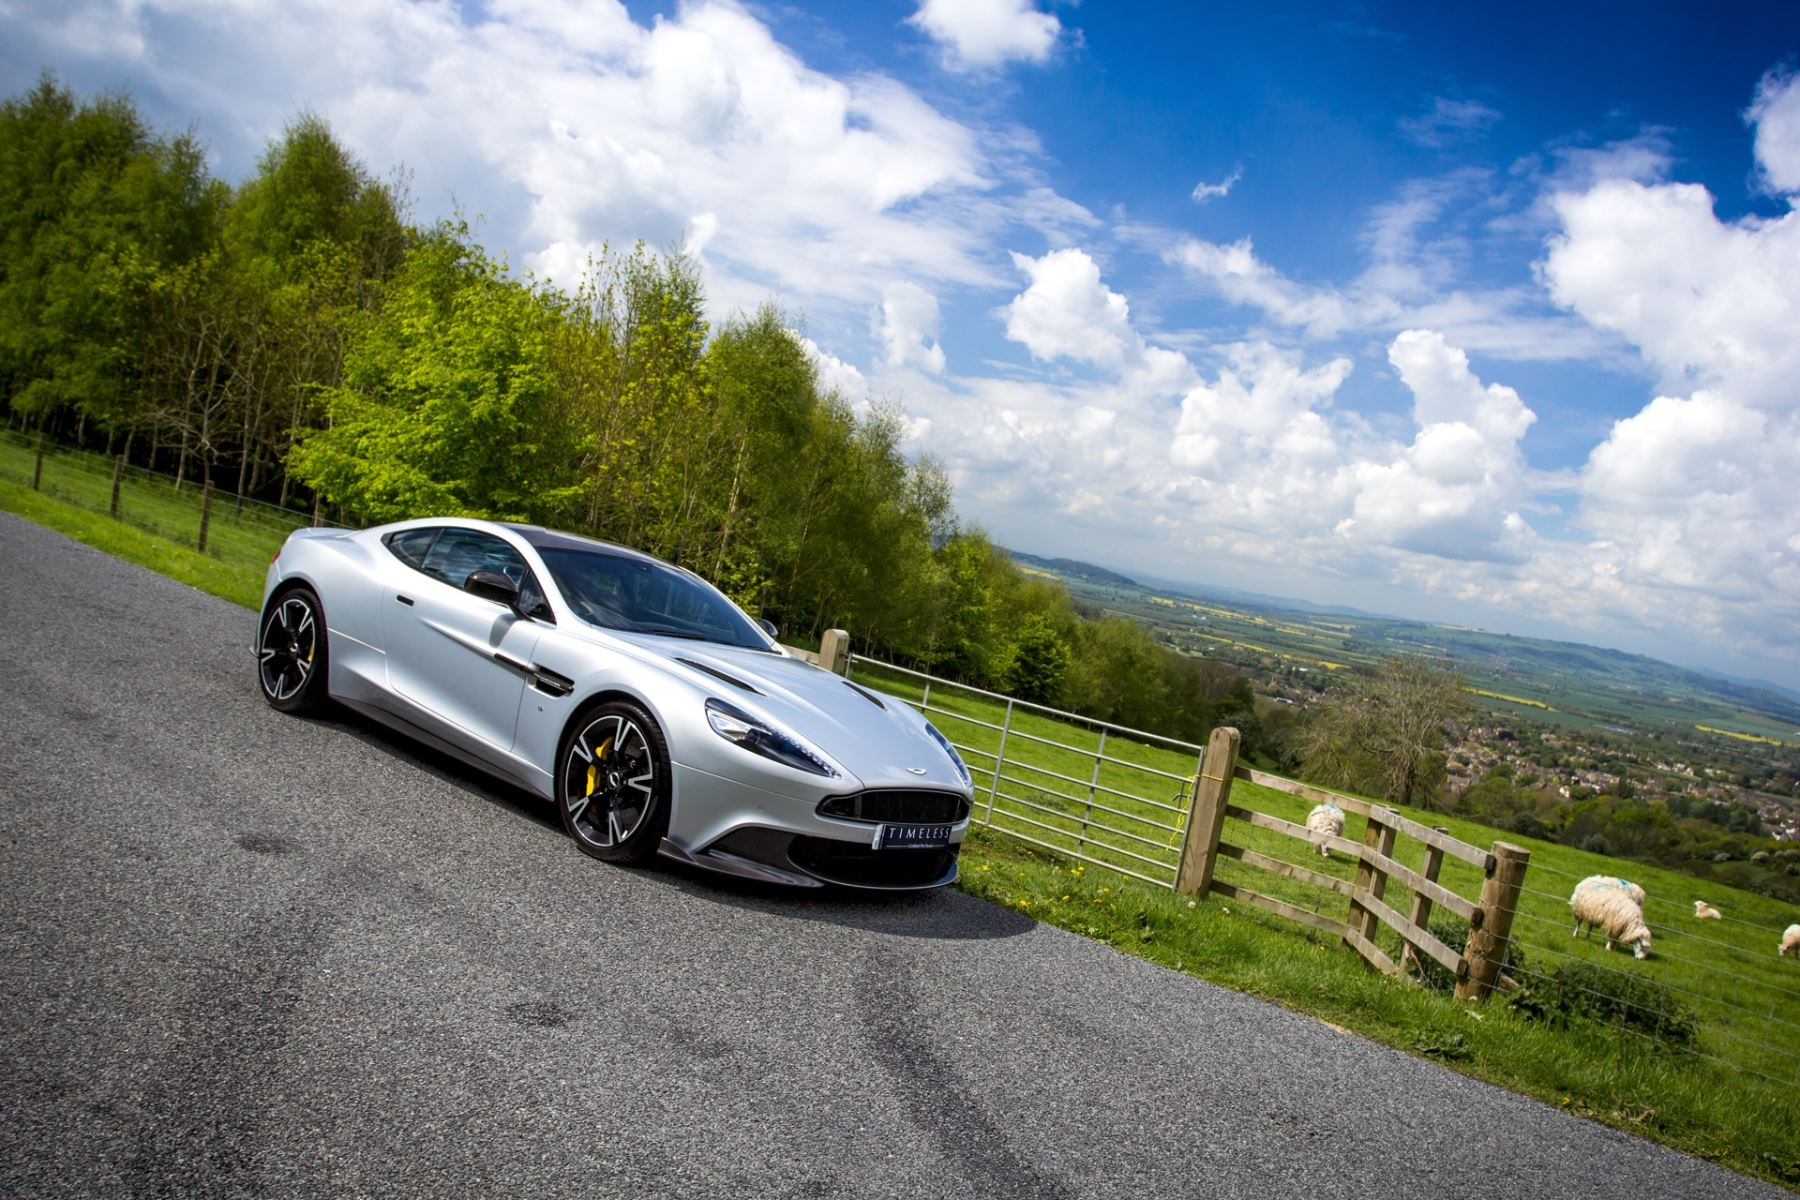 Aston Martin Vanquish V12 [595] S 2+2 2dr Touchtronic image 30